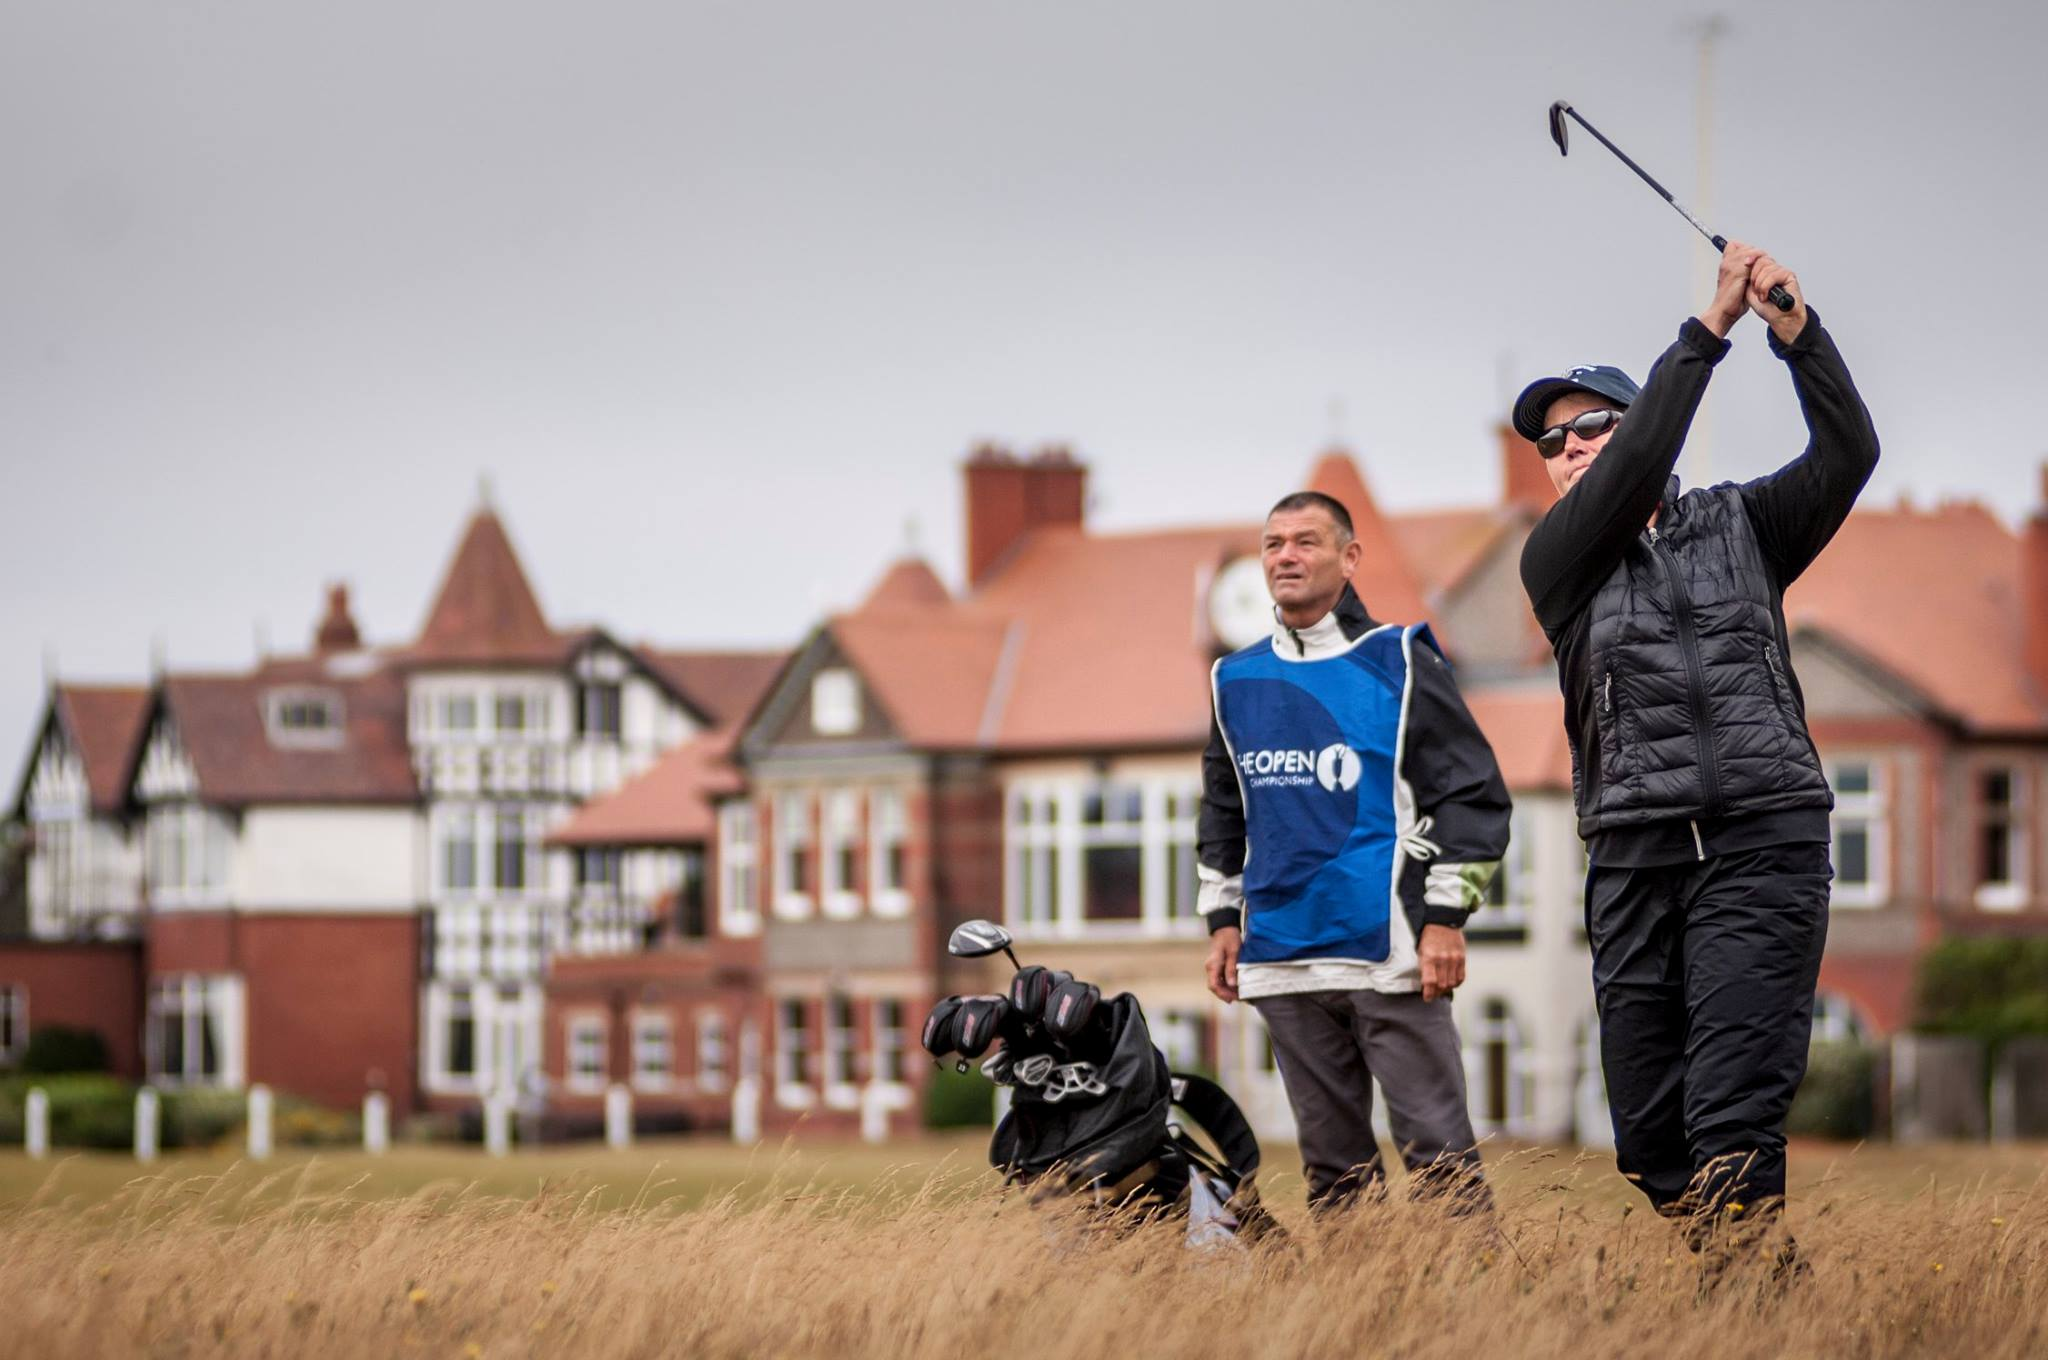 2015 British Isles Golf Cruise & The 144th Open - PerryGolf.com